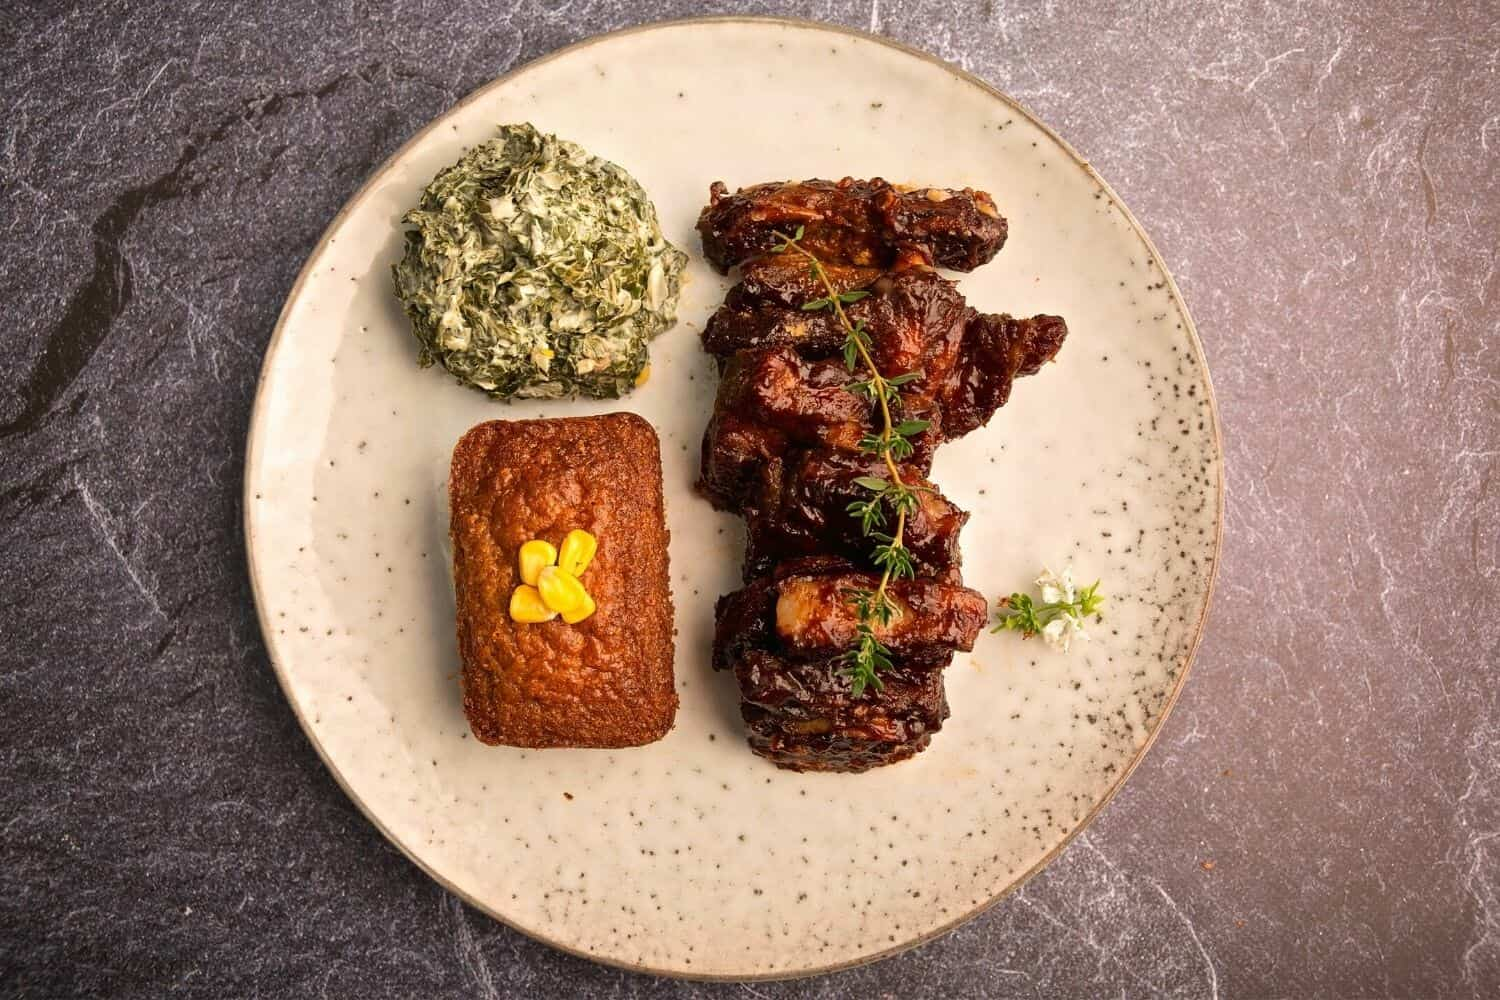 Slow braised beef short rib, homemade BBQ sauce, corn bread and creamed spinach